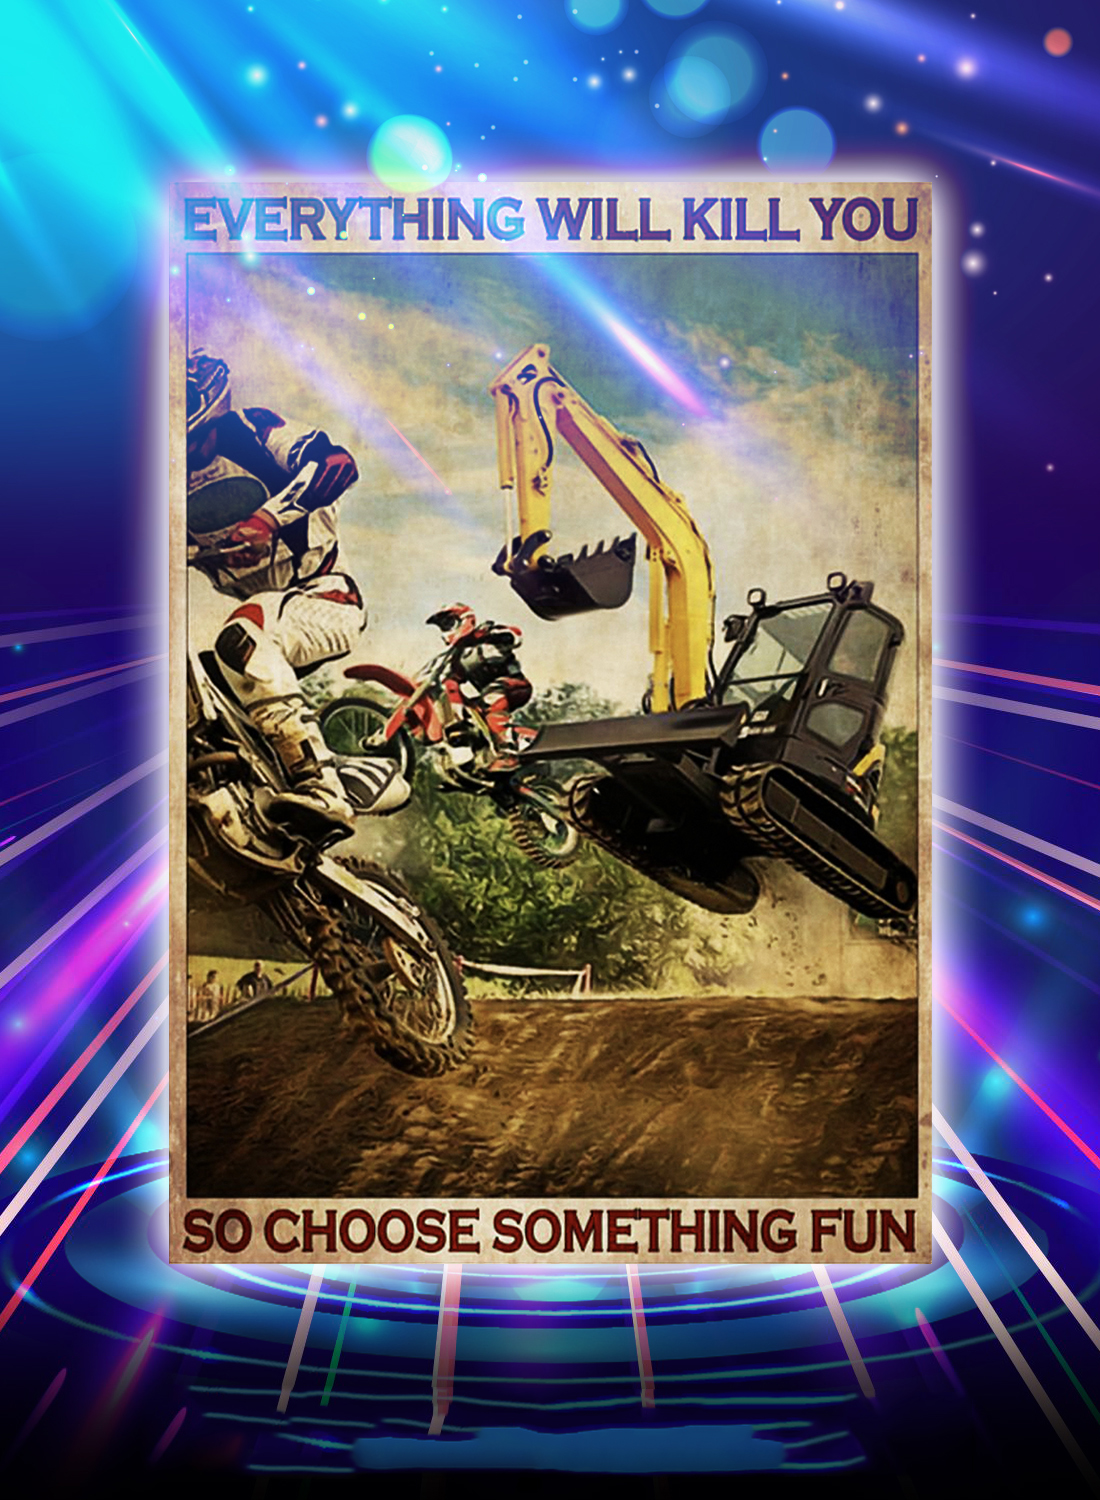 Motocross and excavator everything will kill you so choose something fun poster